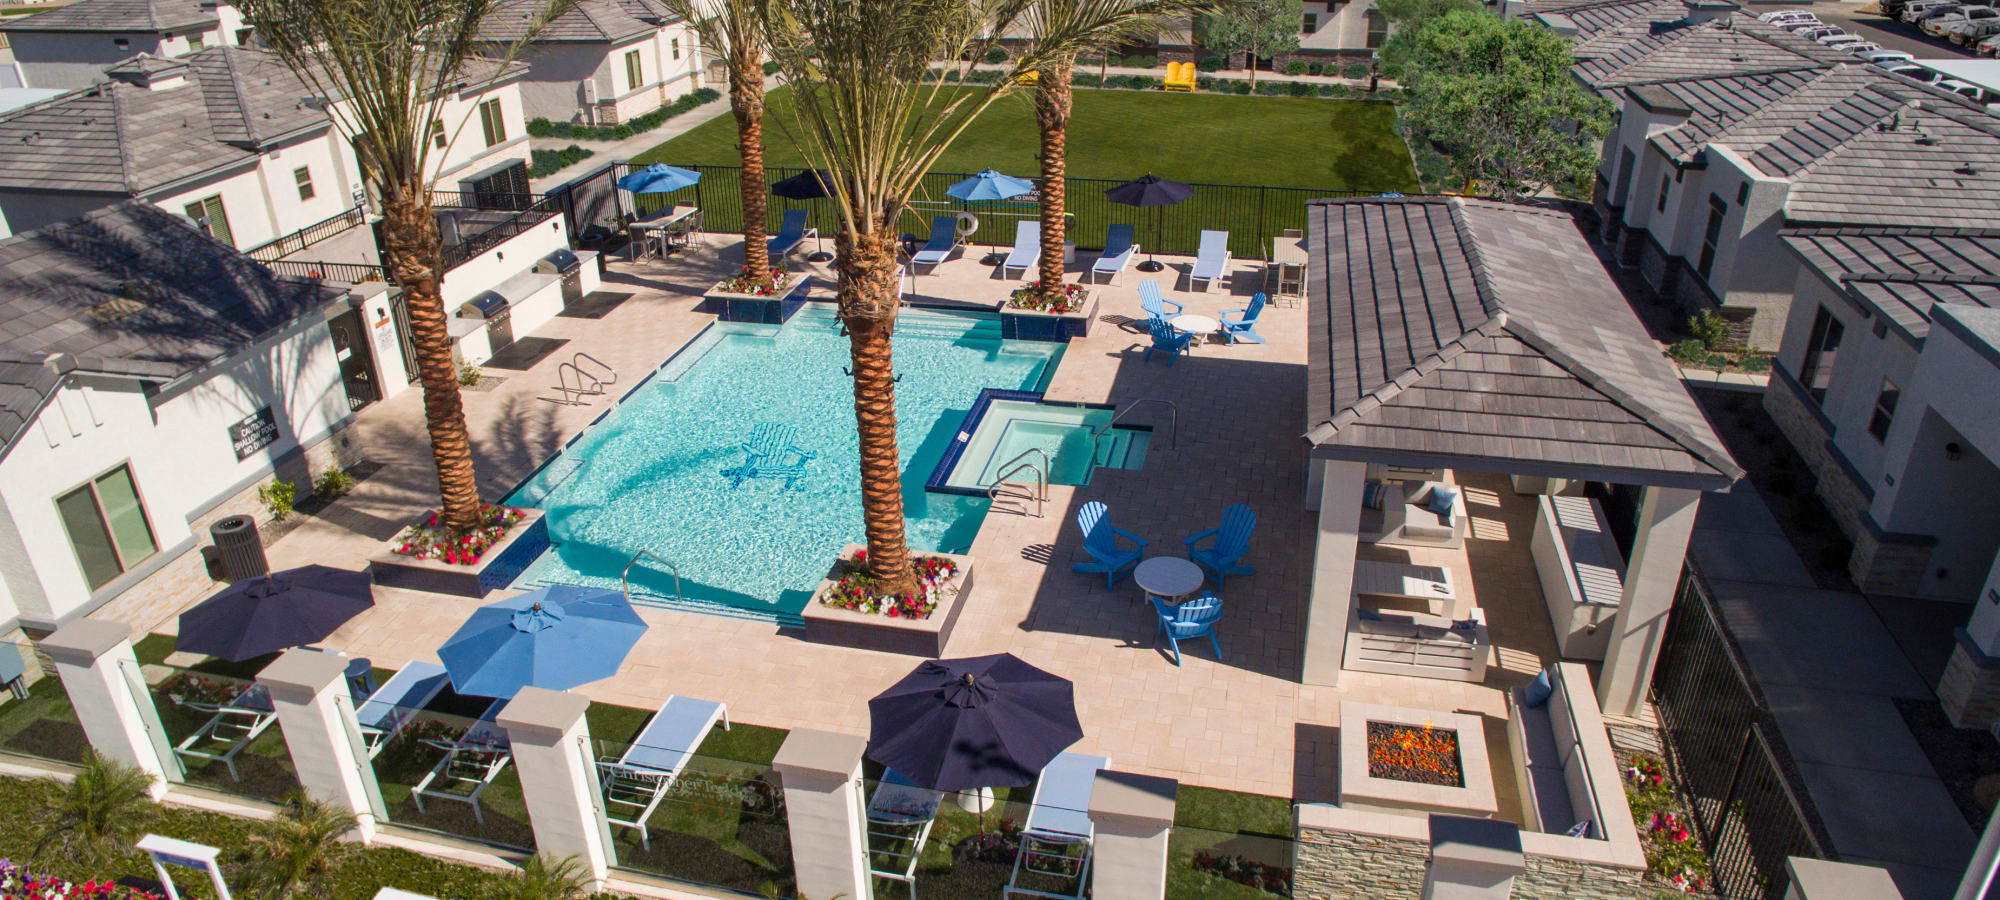 Aerial view of the pool area at Christopher Todd Communities At Estrella Commons in Goodyear, Arizona